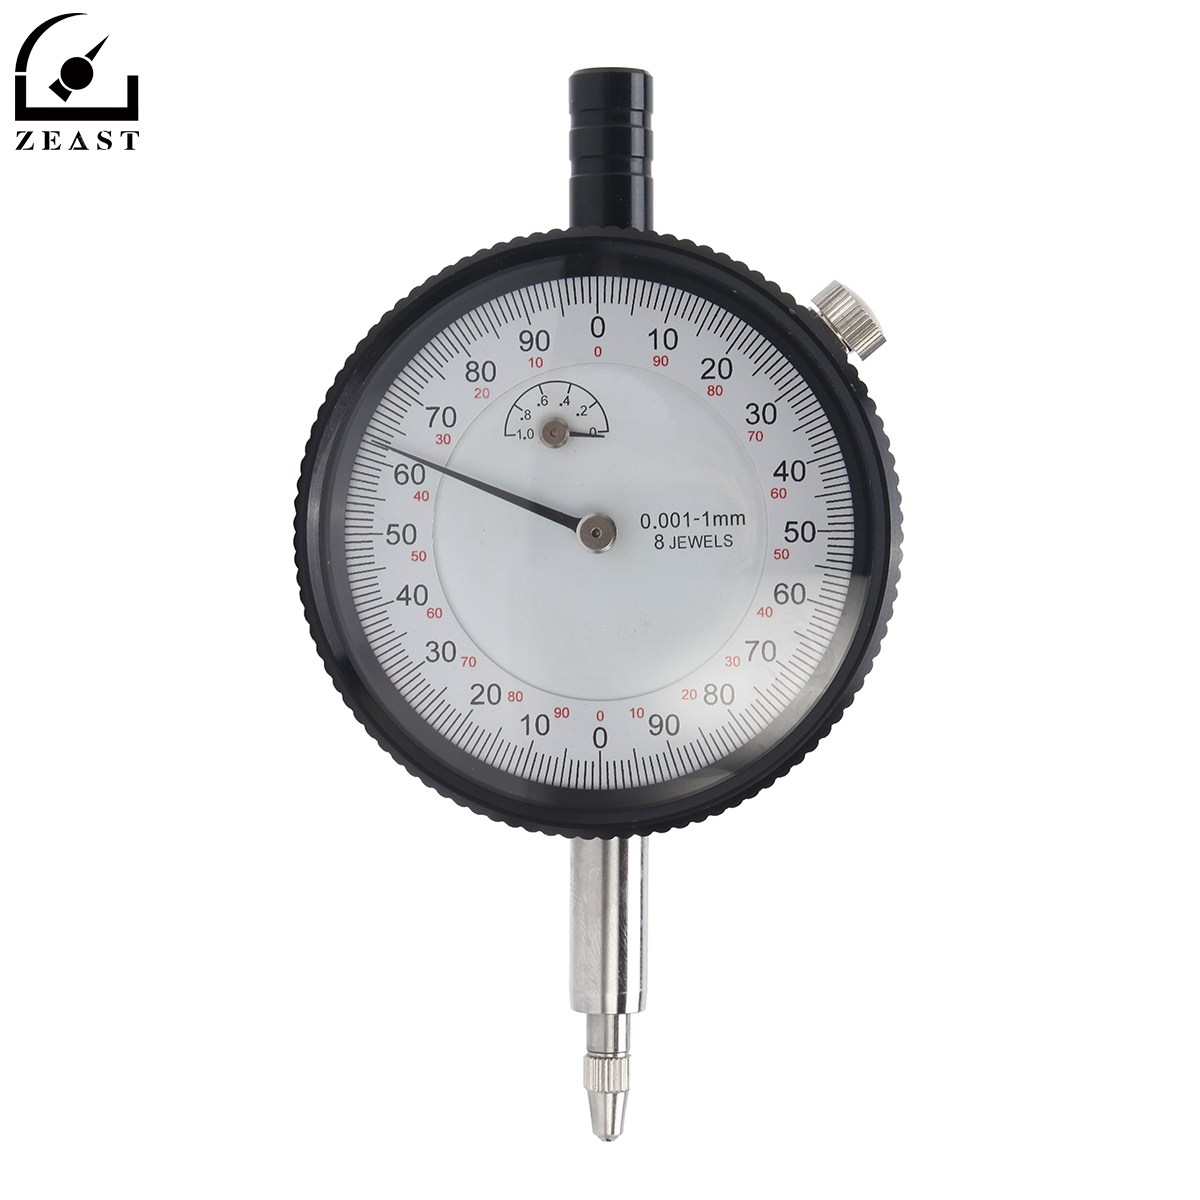 Micron Dial Gauge Test Indicator Precision 0-1mm 0.001mm Indicators Tool 40112302 dial test indicator precision metric with dovetail rails